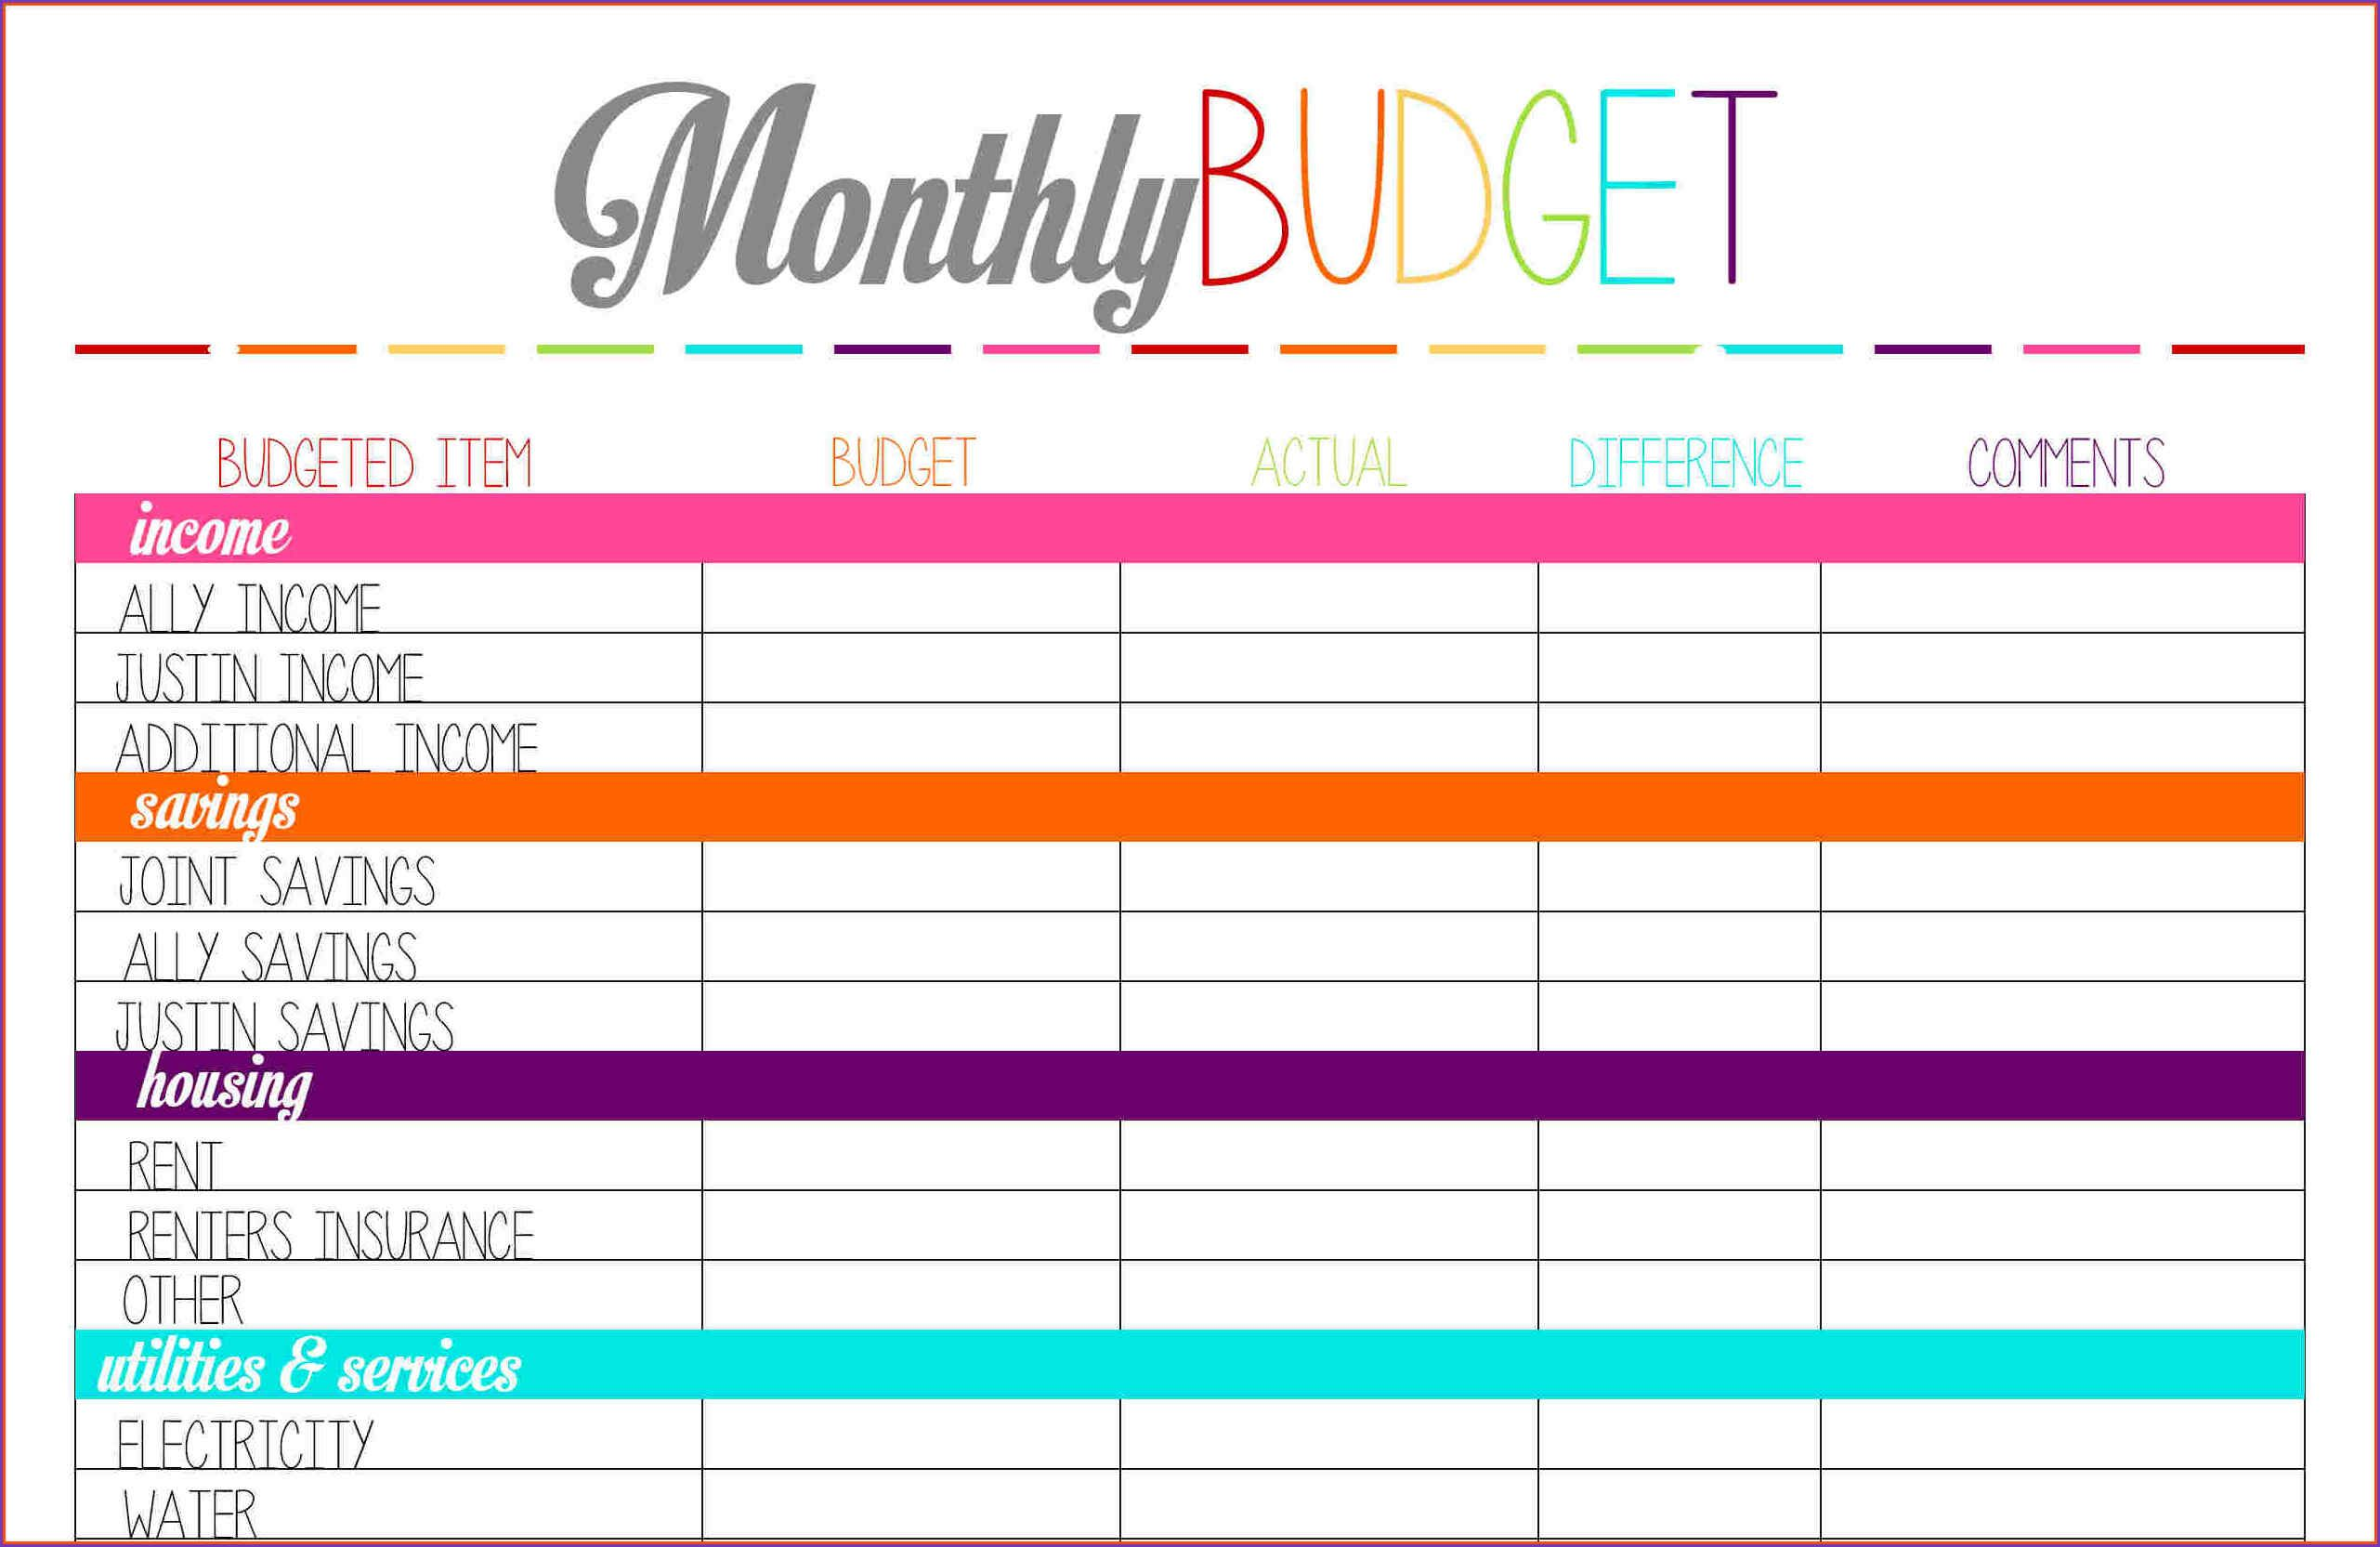 FREE MONTHLY BUDGET TEMPLATE Oninstall Budget planning